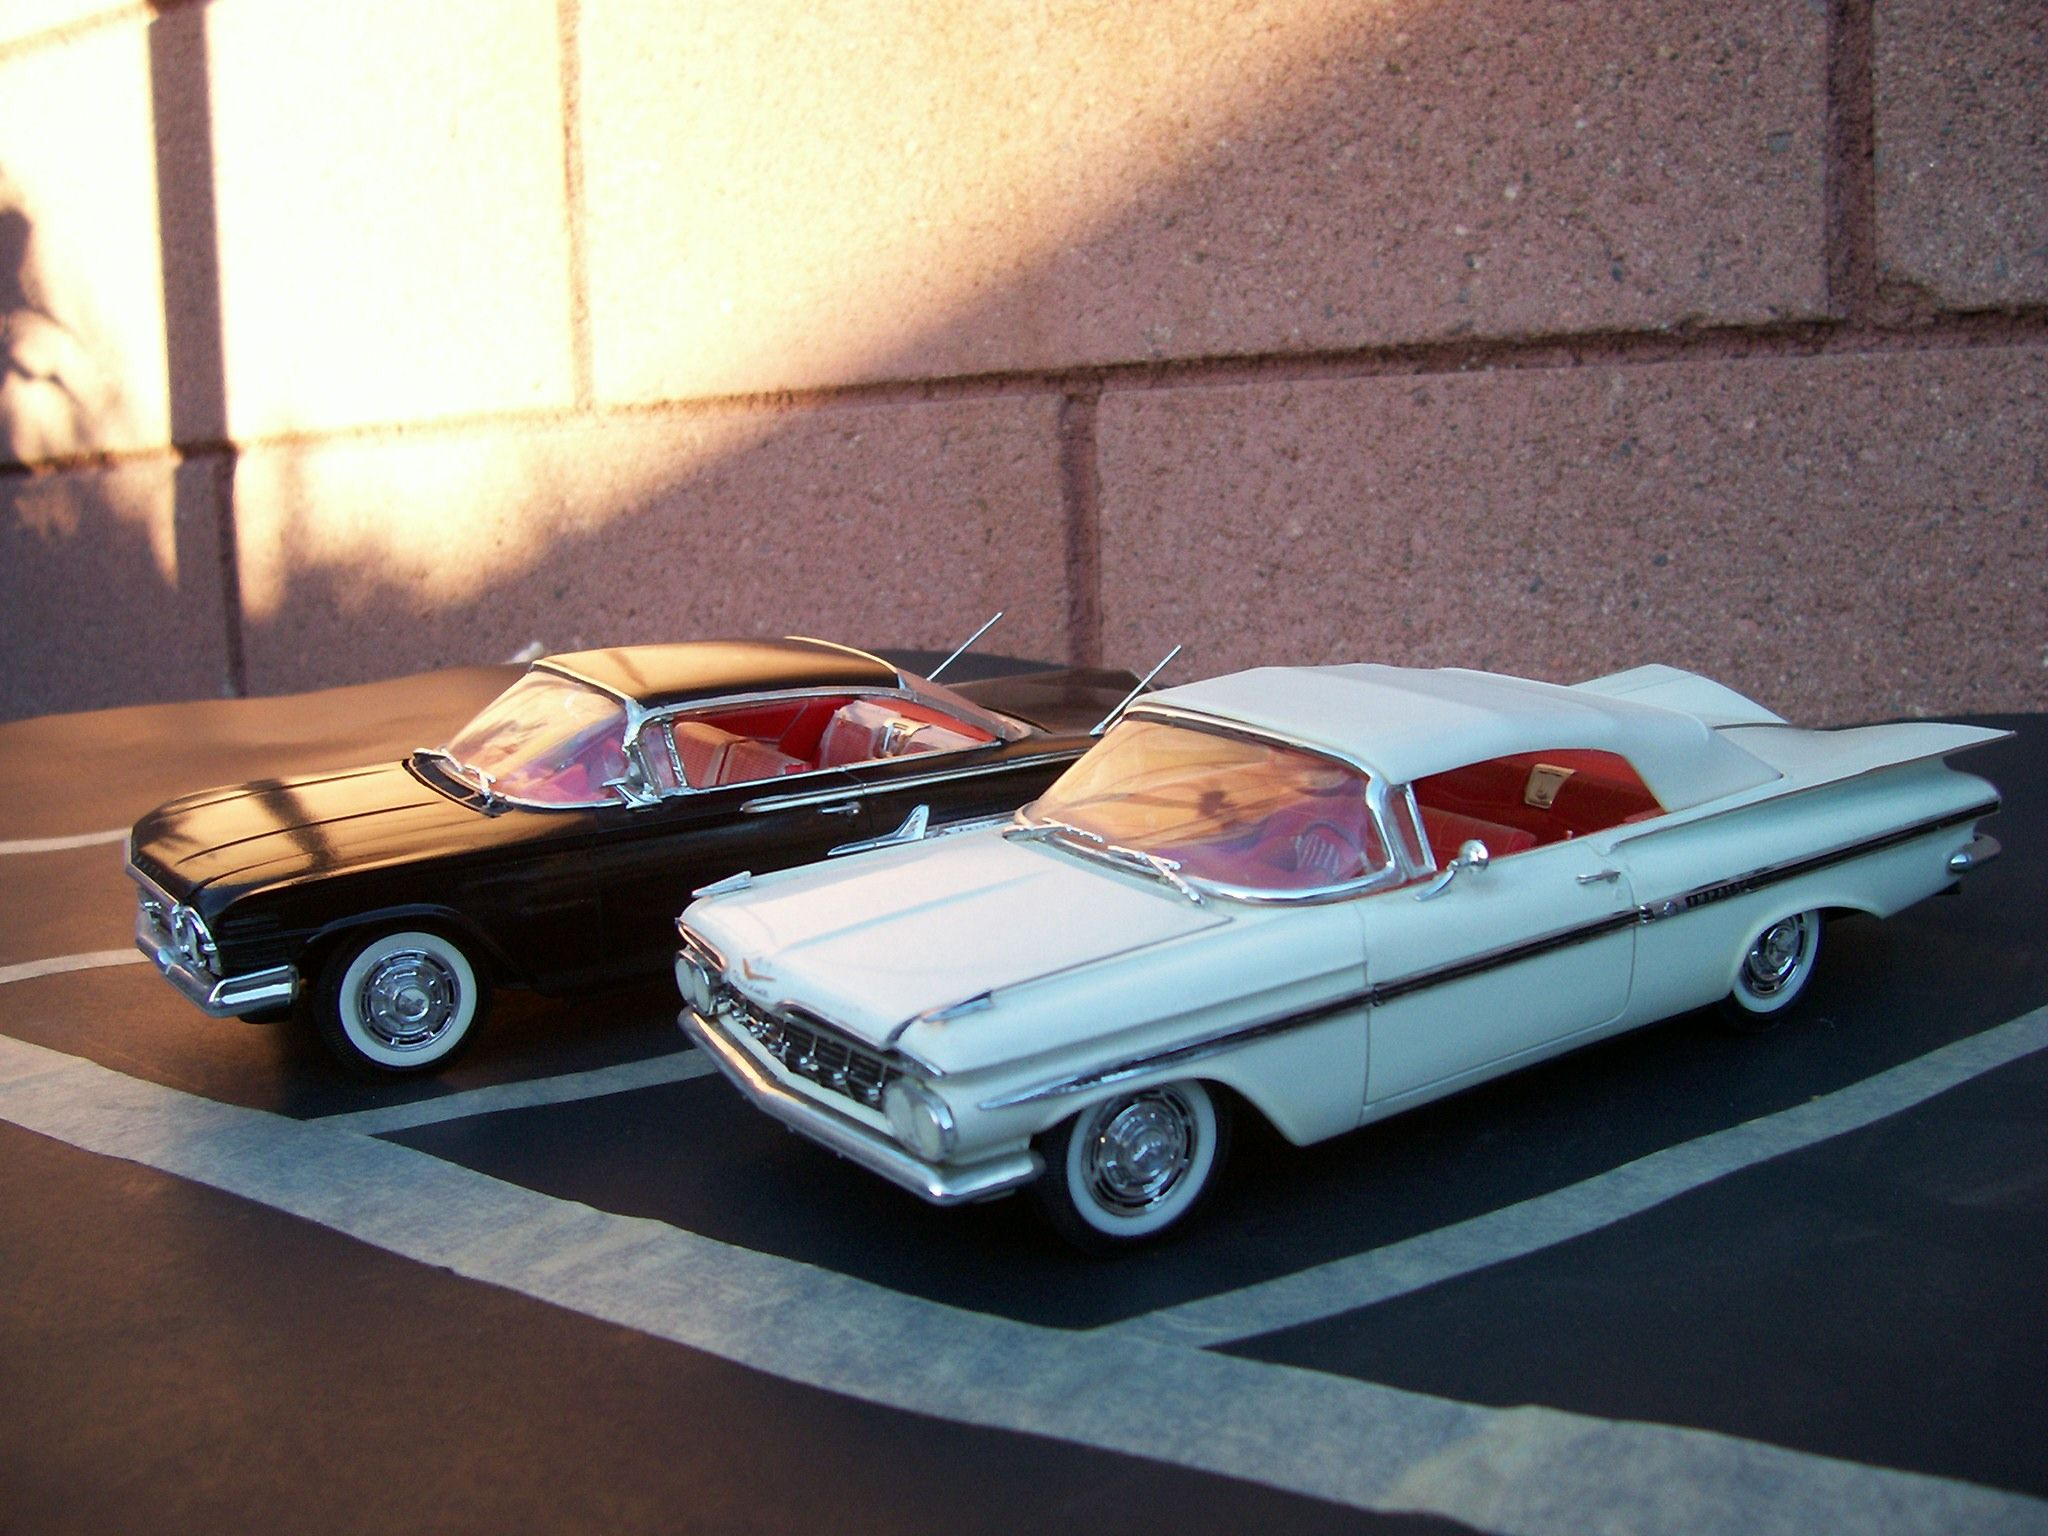 1959 1960 chevy impala 1 25 scale model cars built from revell model